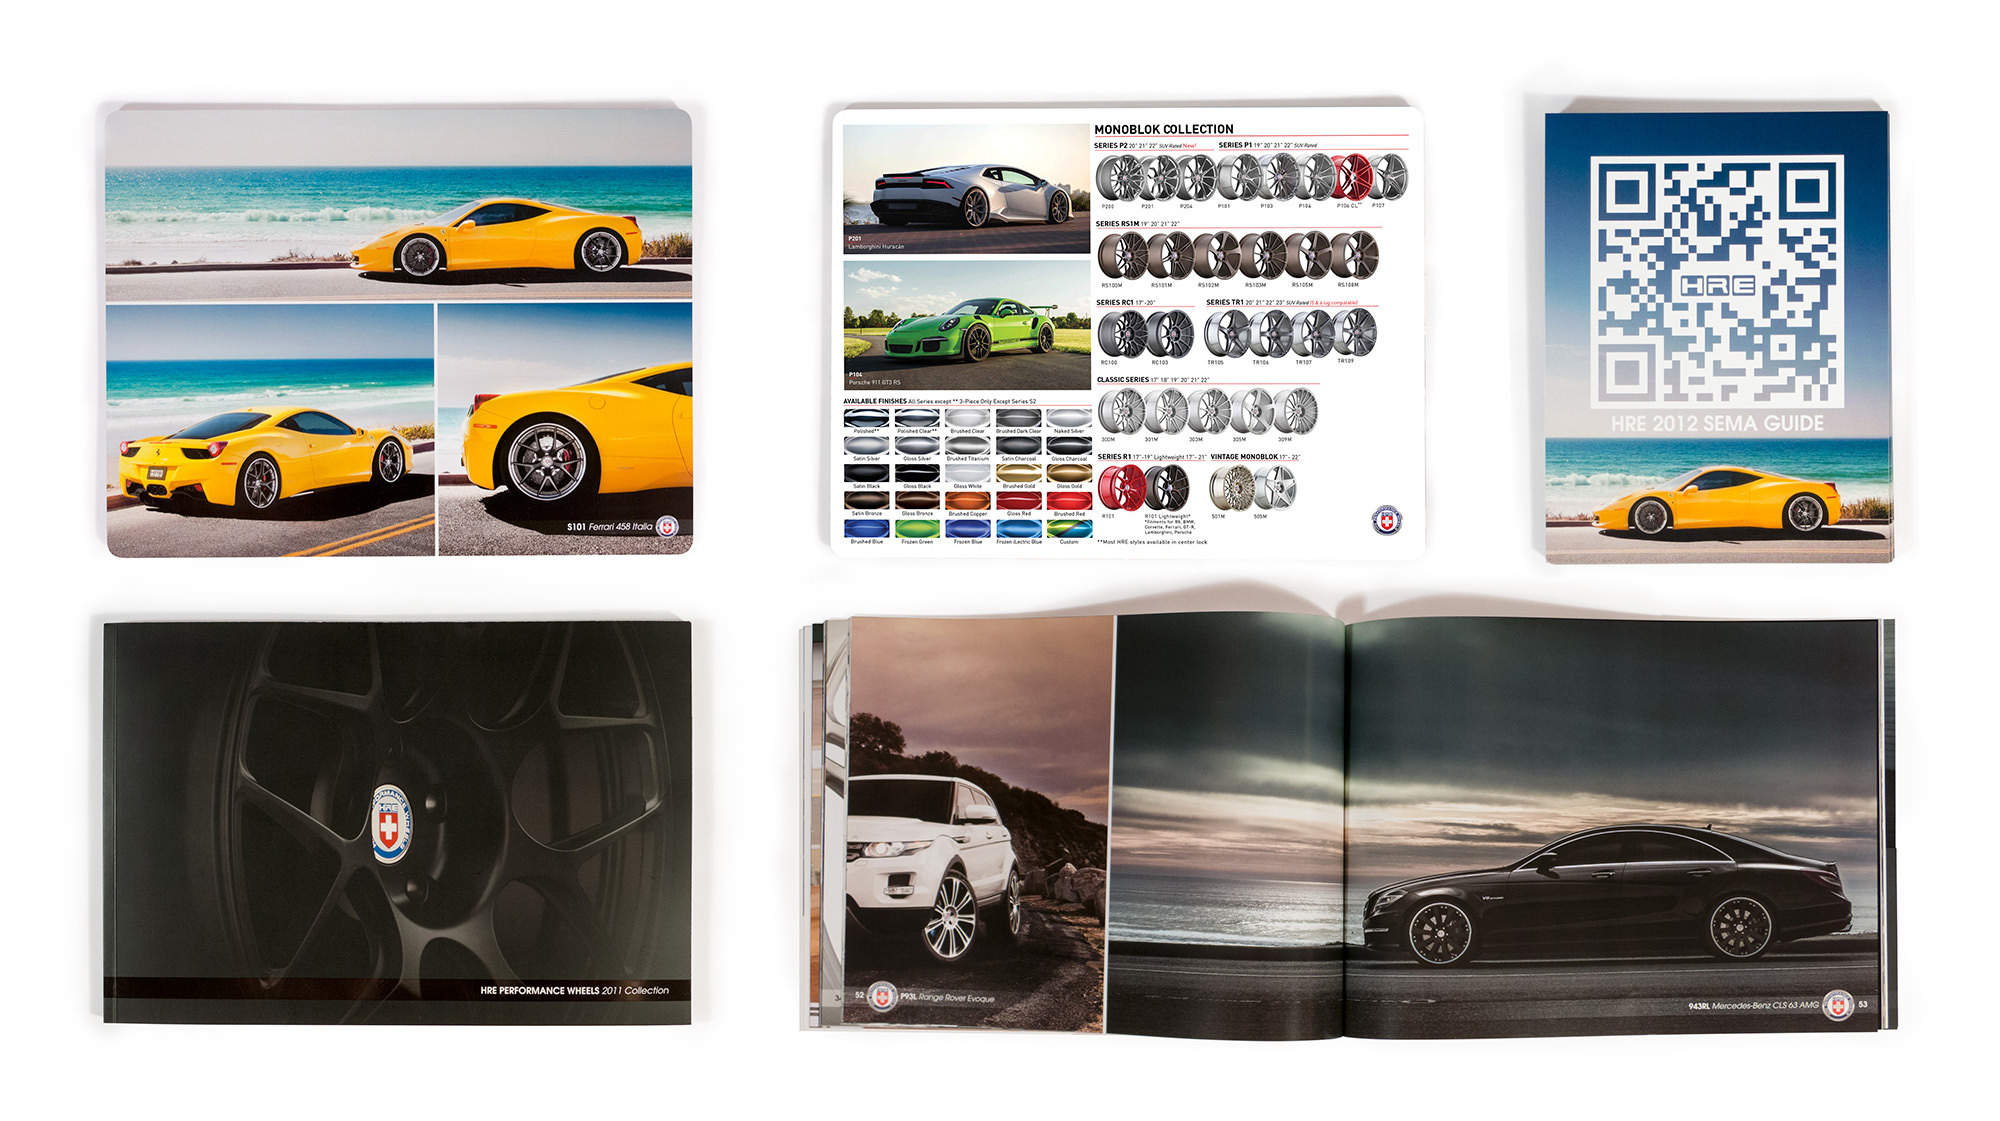 HRE Print Collateral